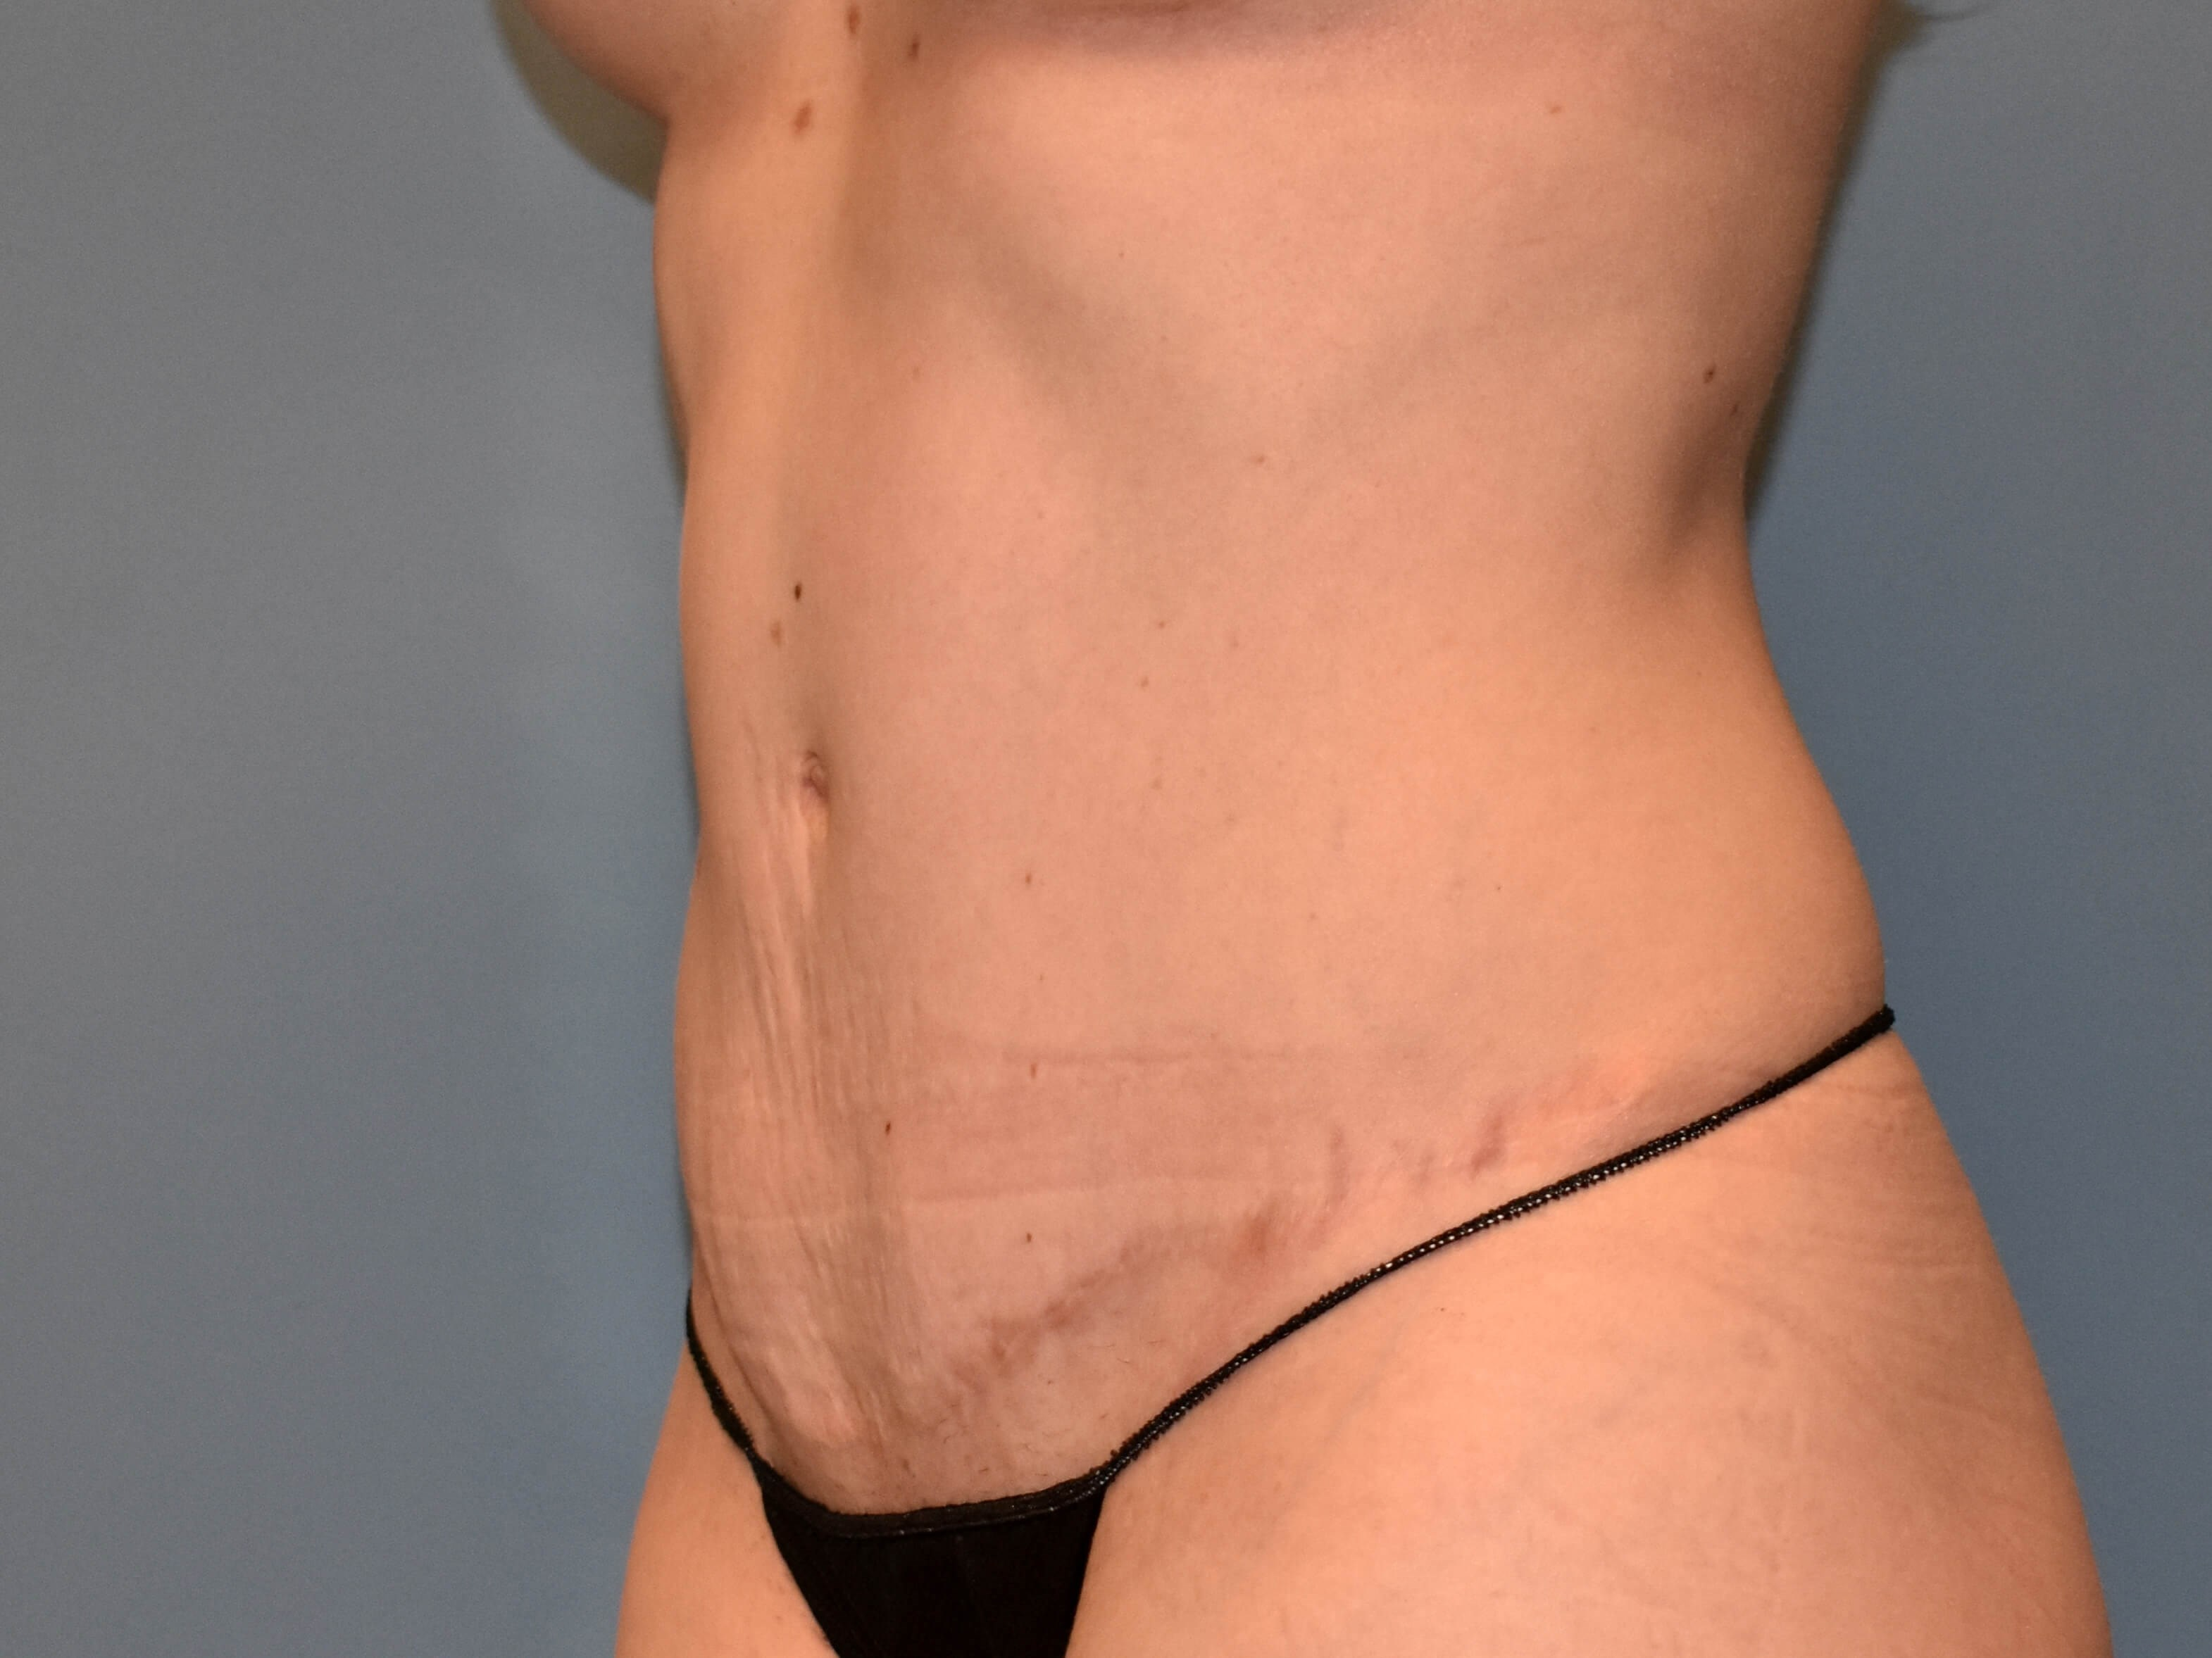 Left Angle - Abdominoplasty After